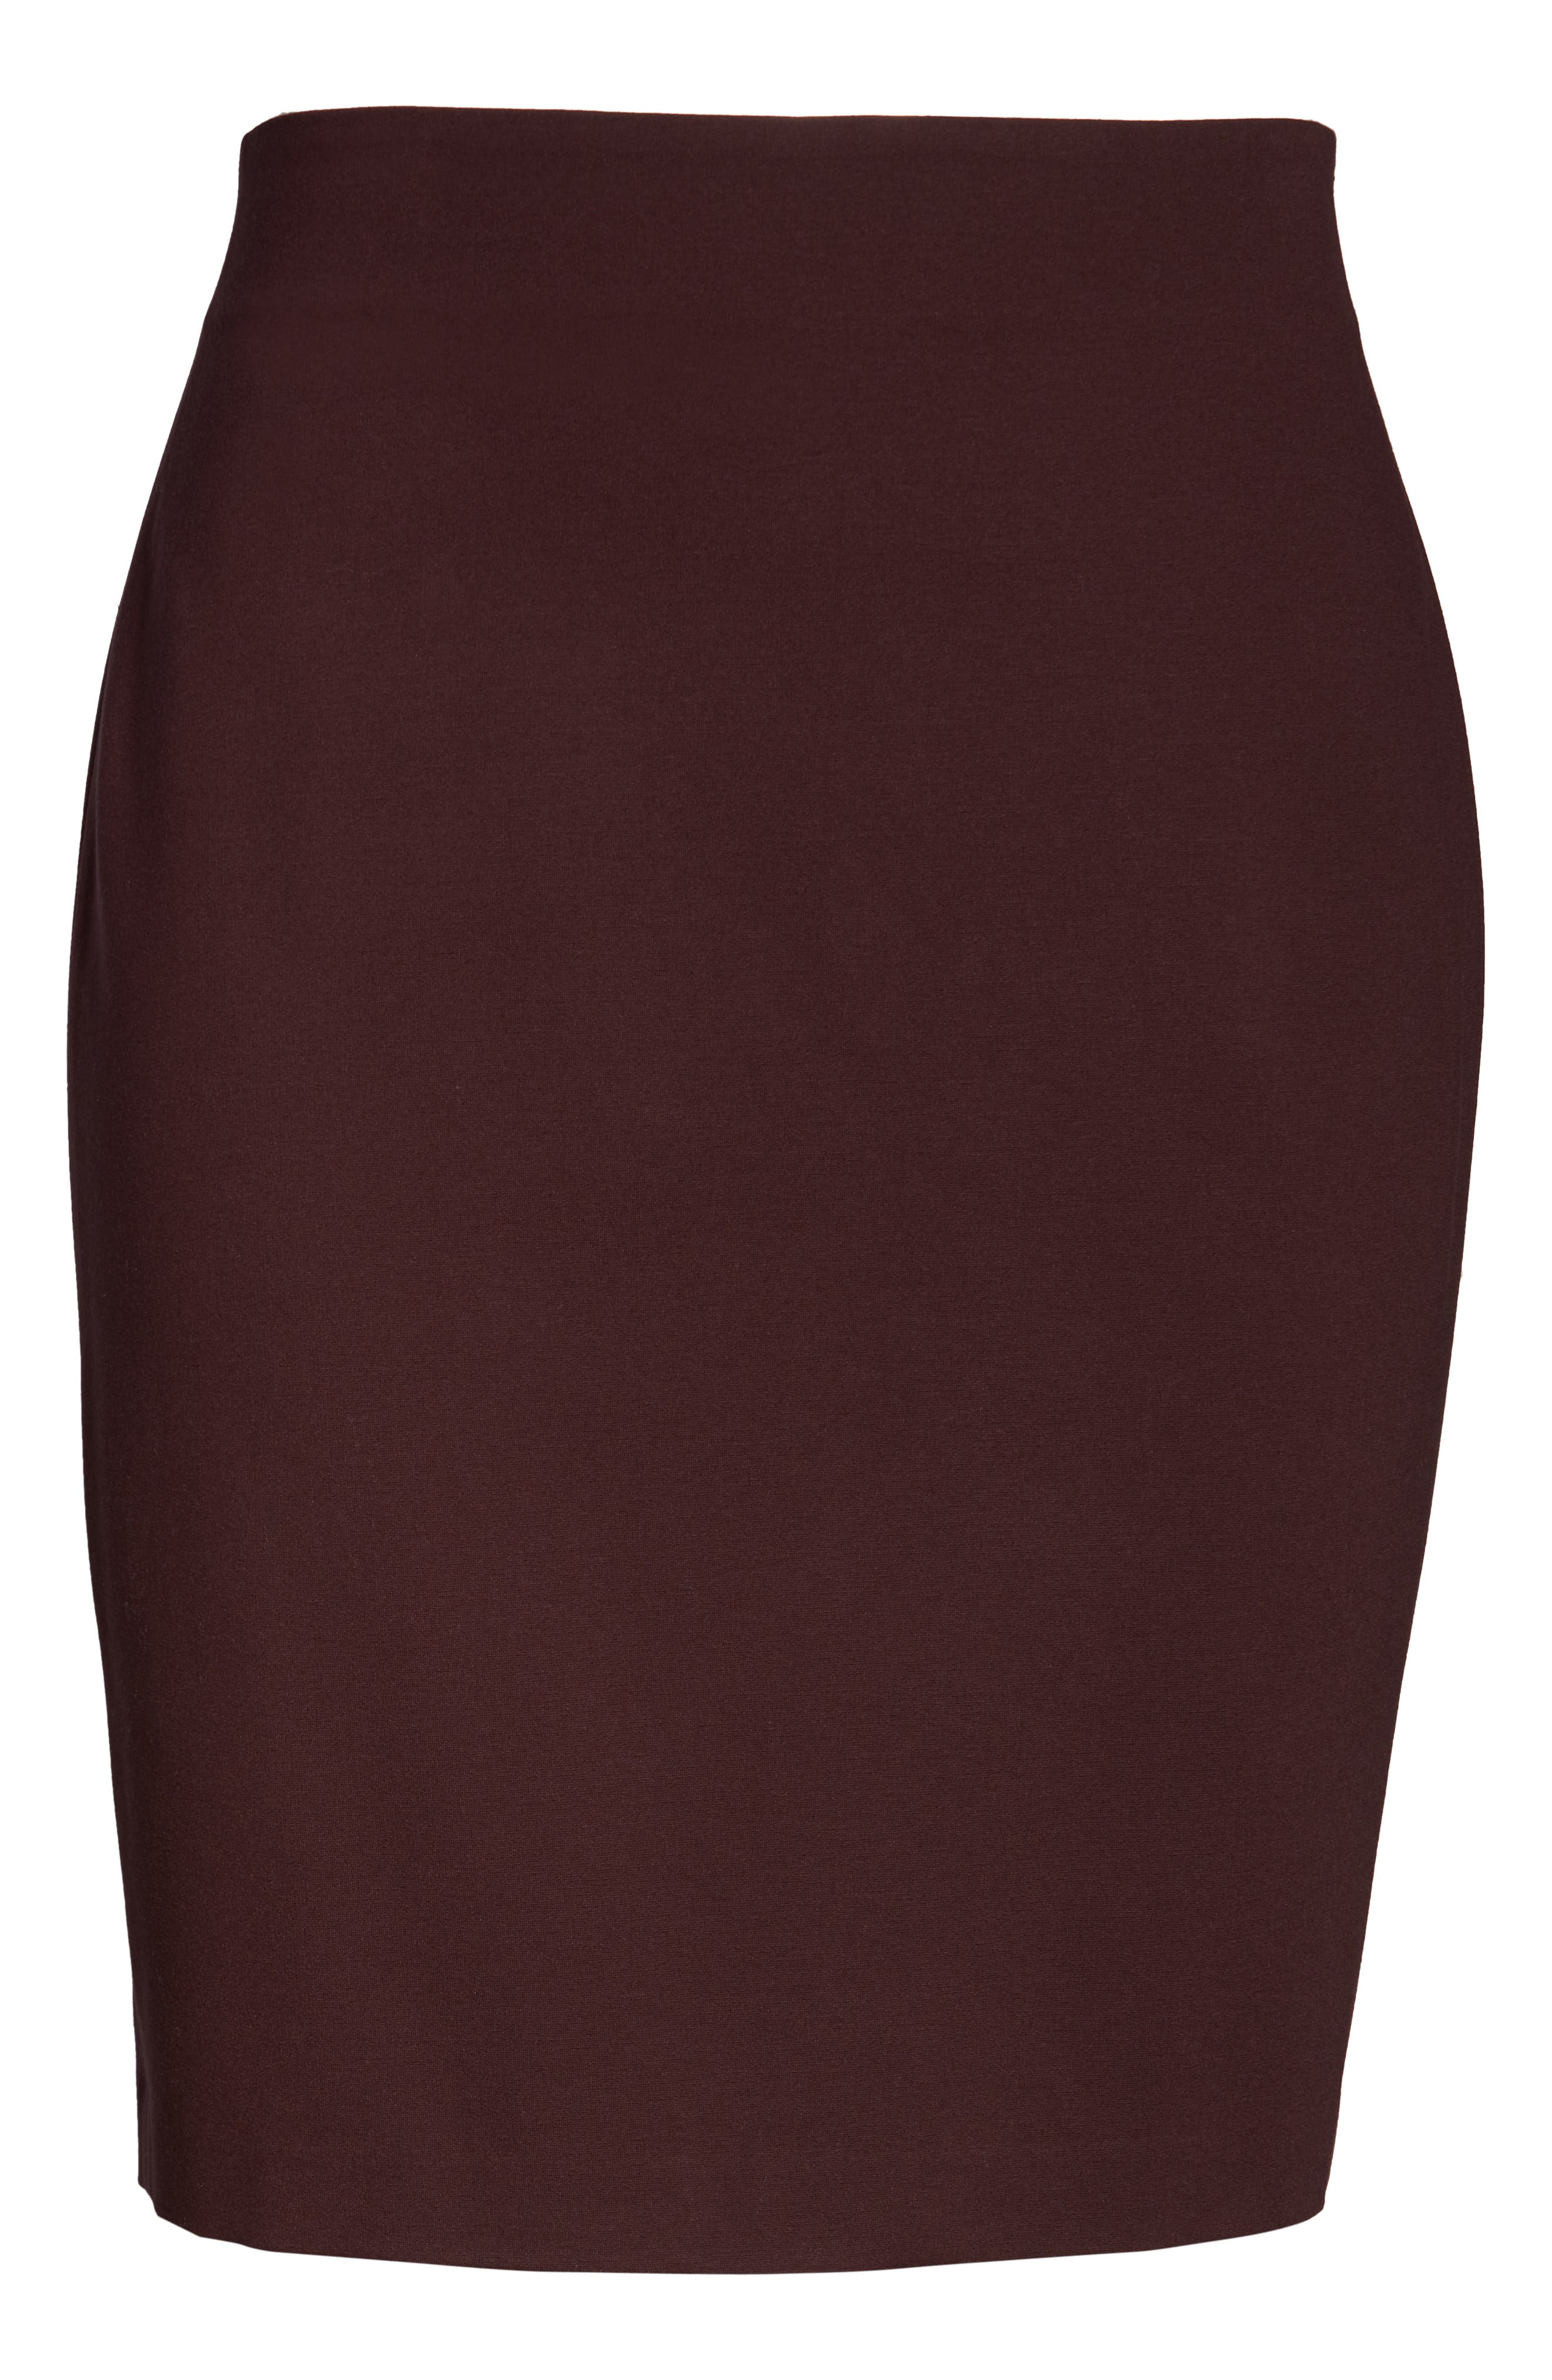 5f717c467 Women's Knee-Length Skirts | Nordstrom